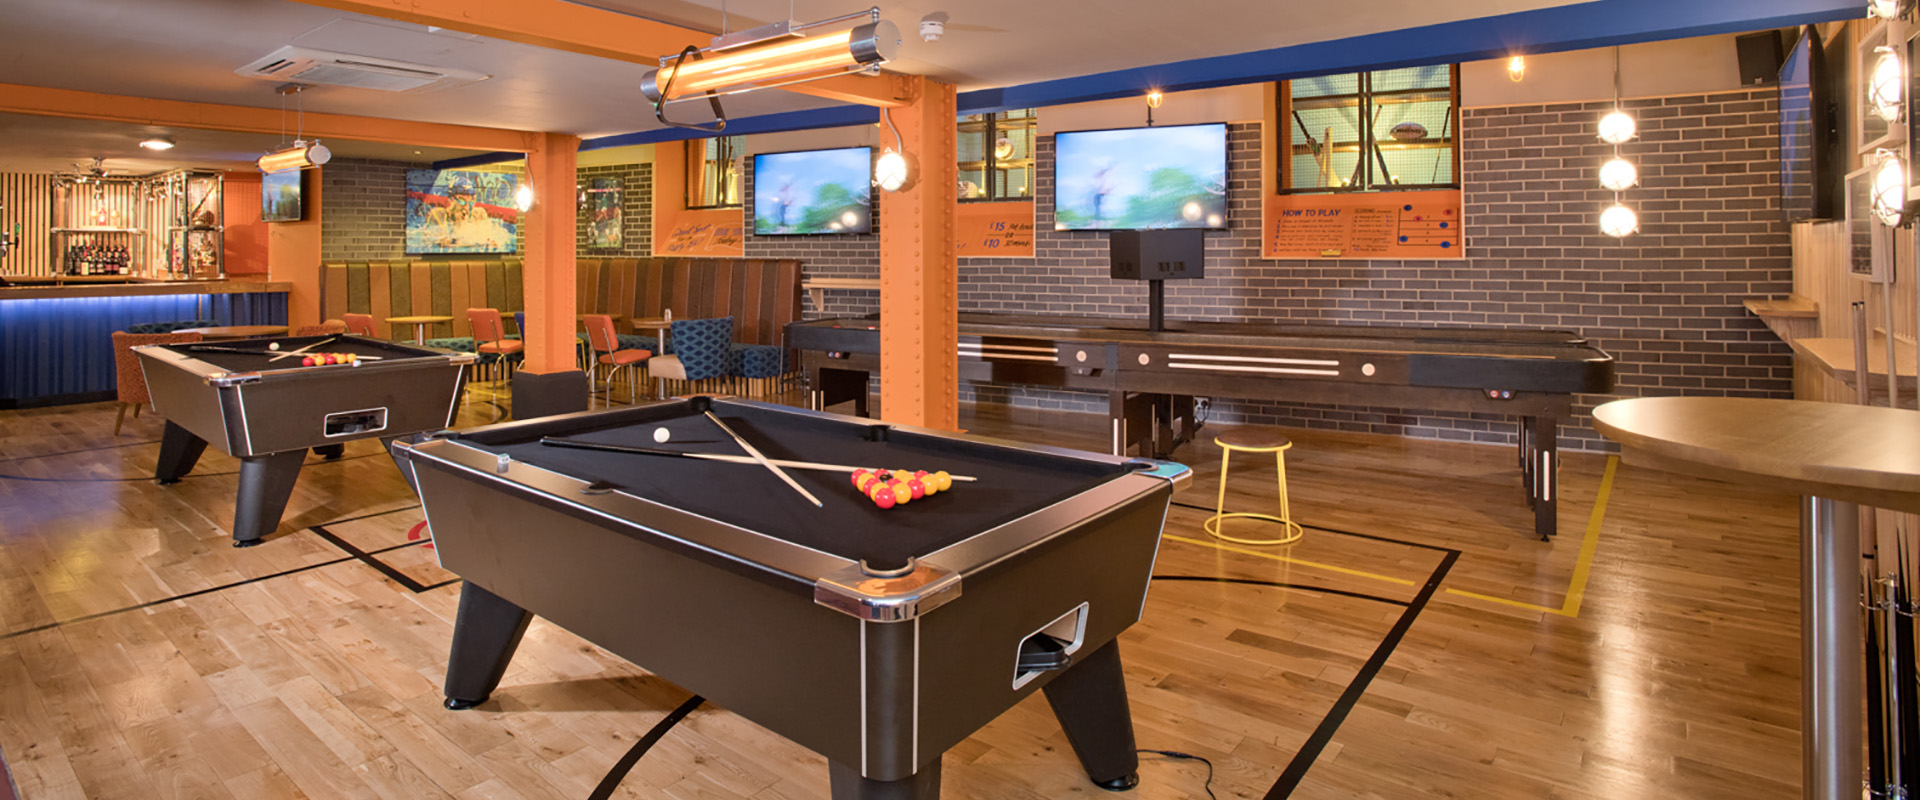 The Sports Ground at Sports Bar and Grill Marylebone